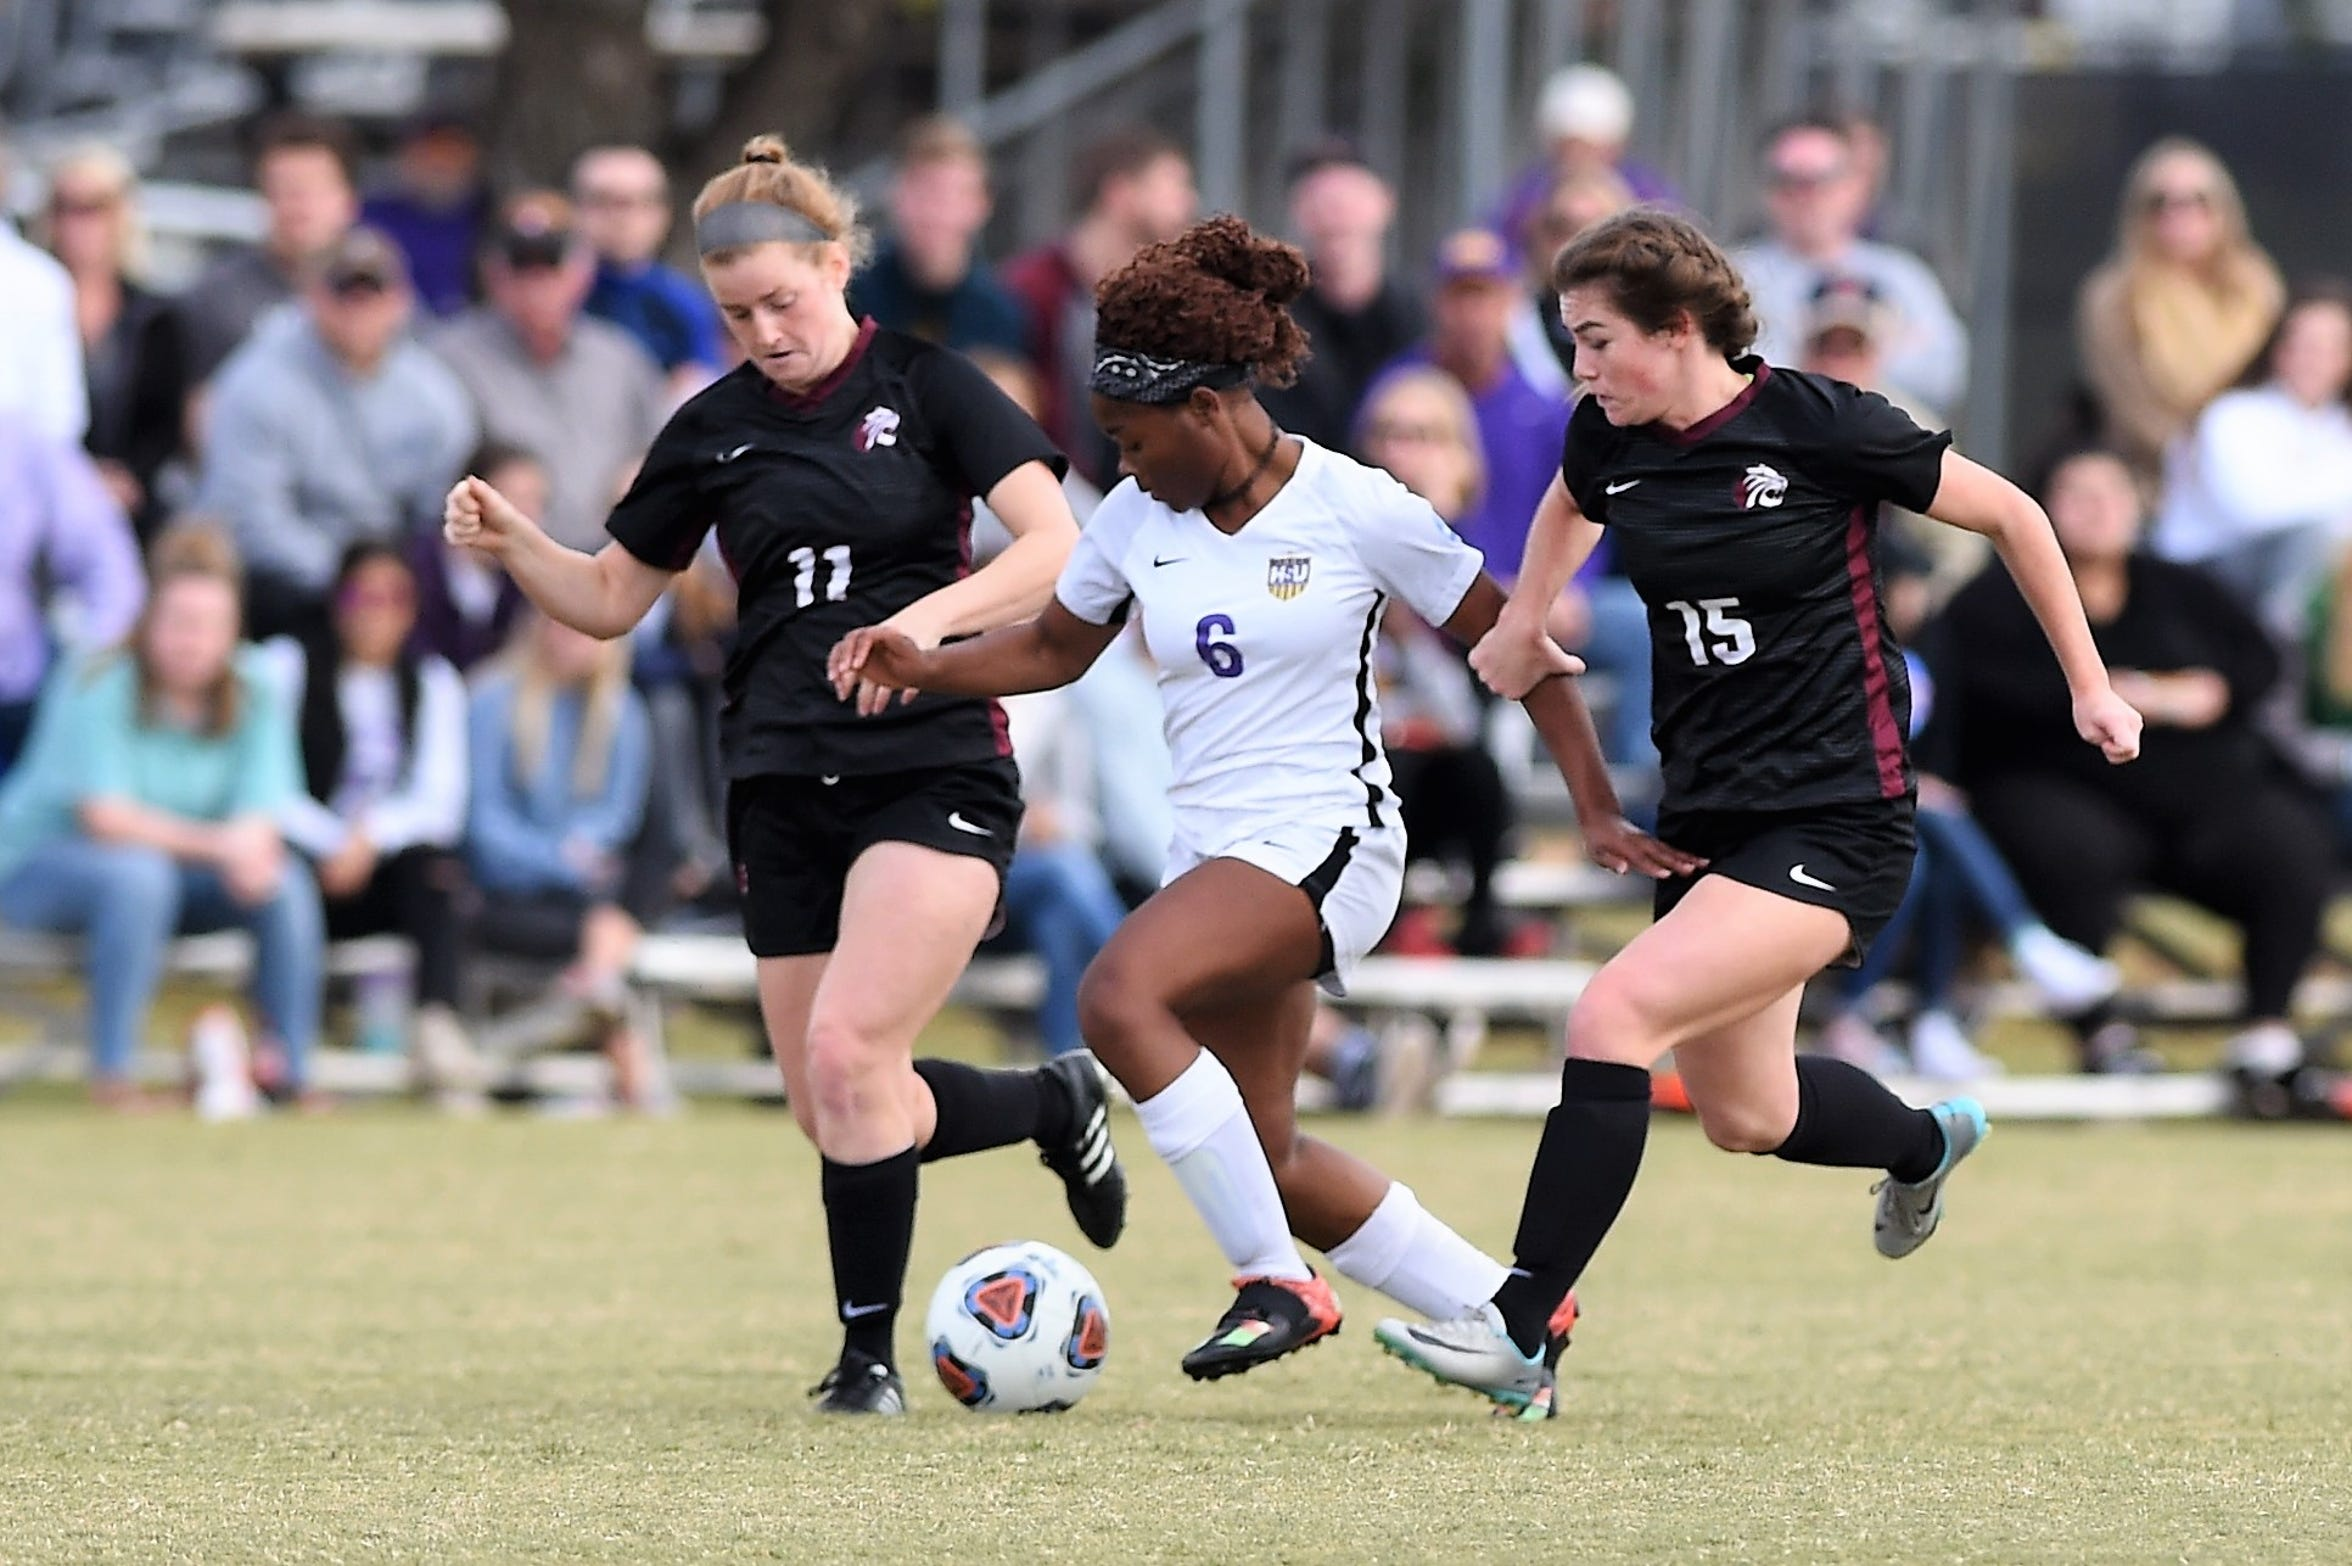 Hardin-Simmons forward Finda Kollie (6) attempts to split a pair of Trinity defenders in the second round of the 2018 NCAA Division III tournament. The Cowgirls reached the Sweet 16 for the 11th time in program history, all under head coach Marcus Wood.